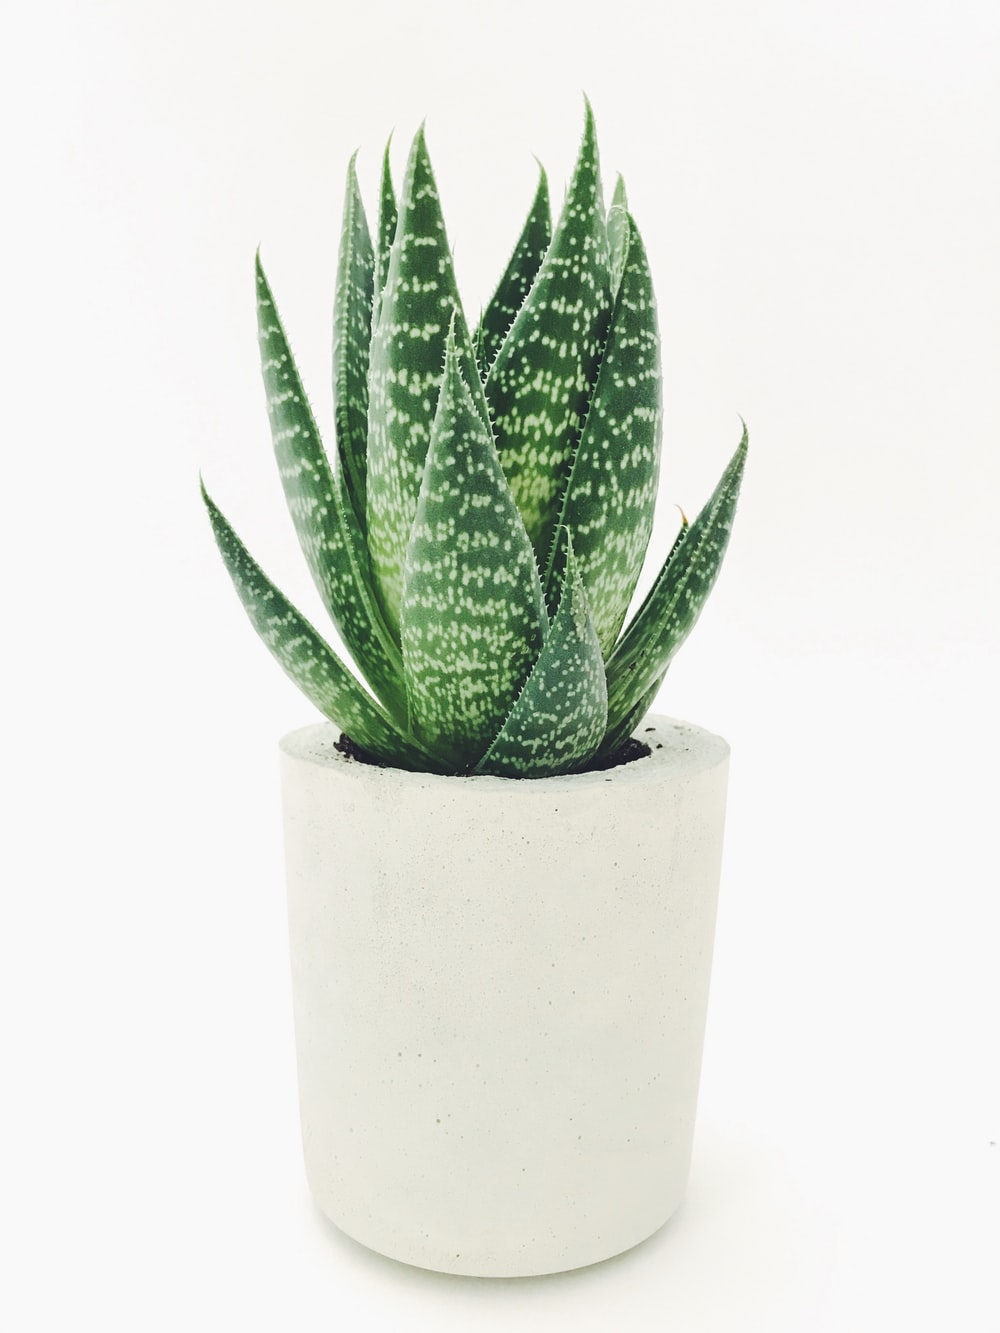 Aloe vera in white pot